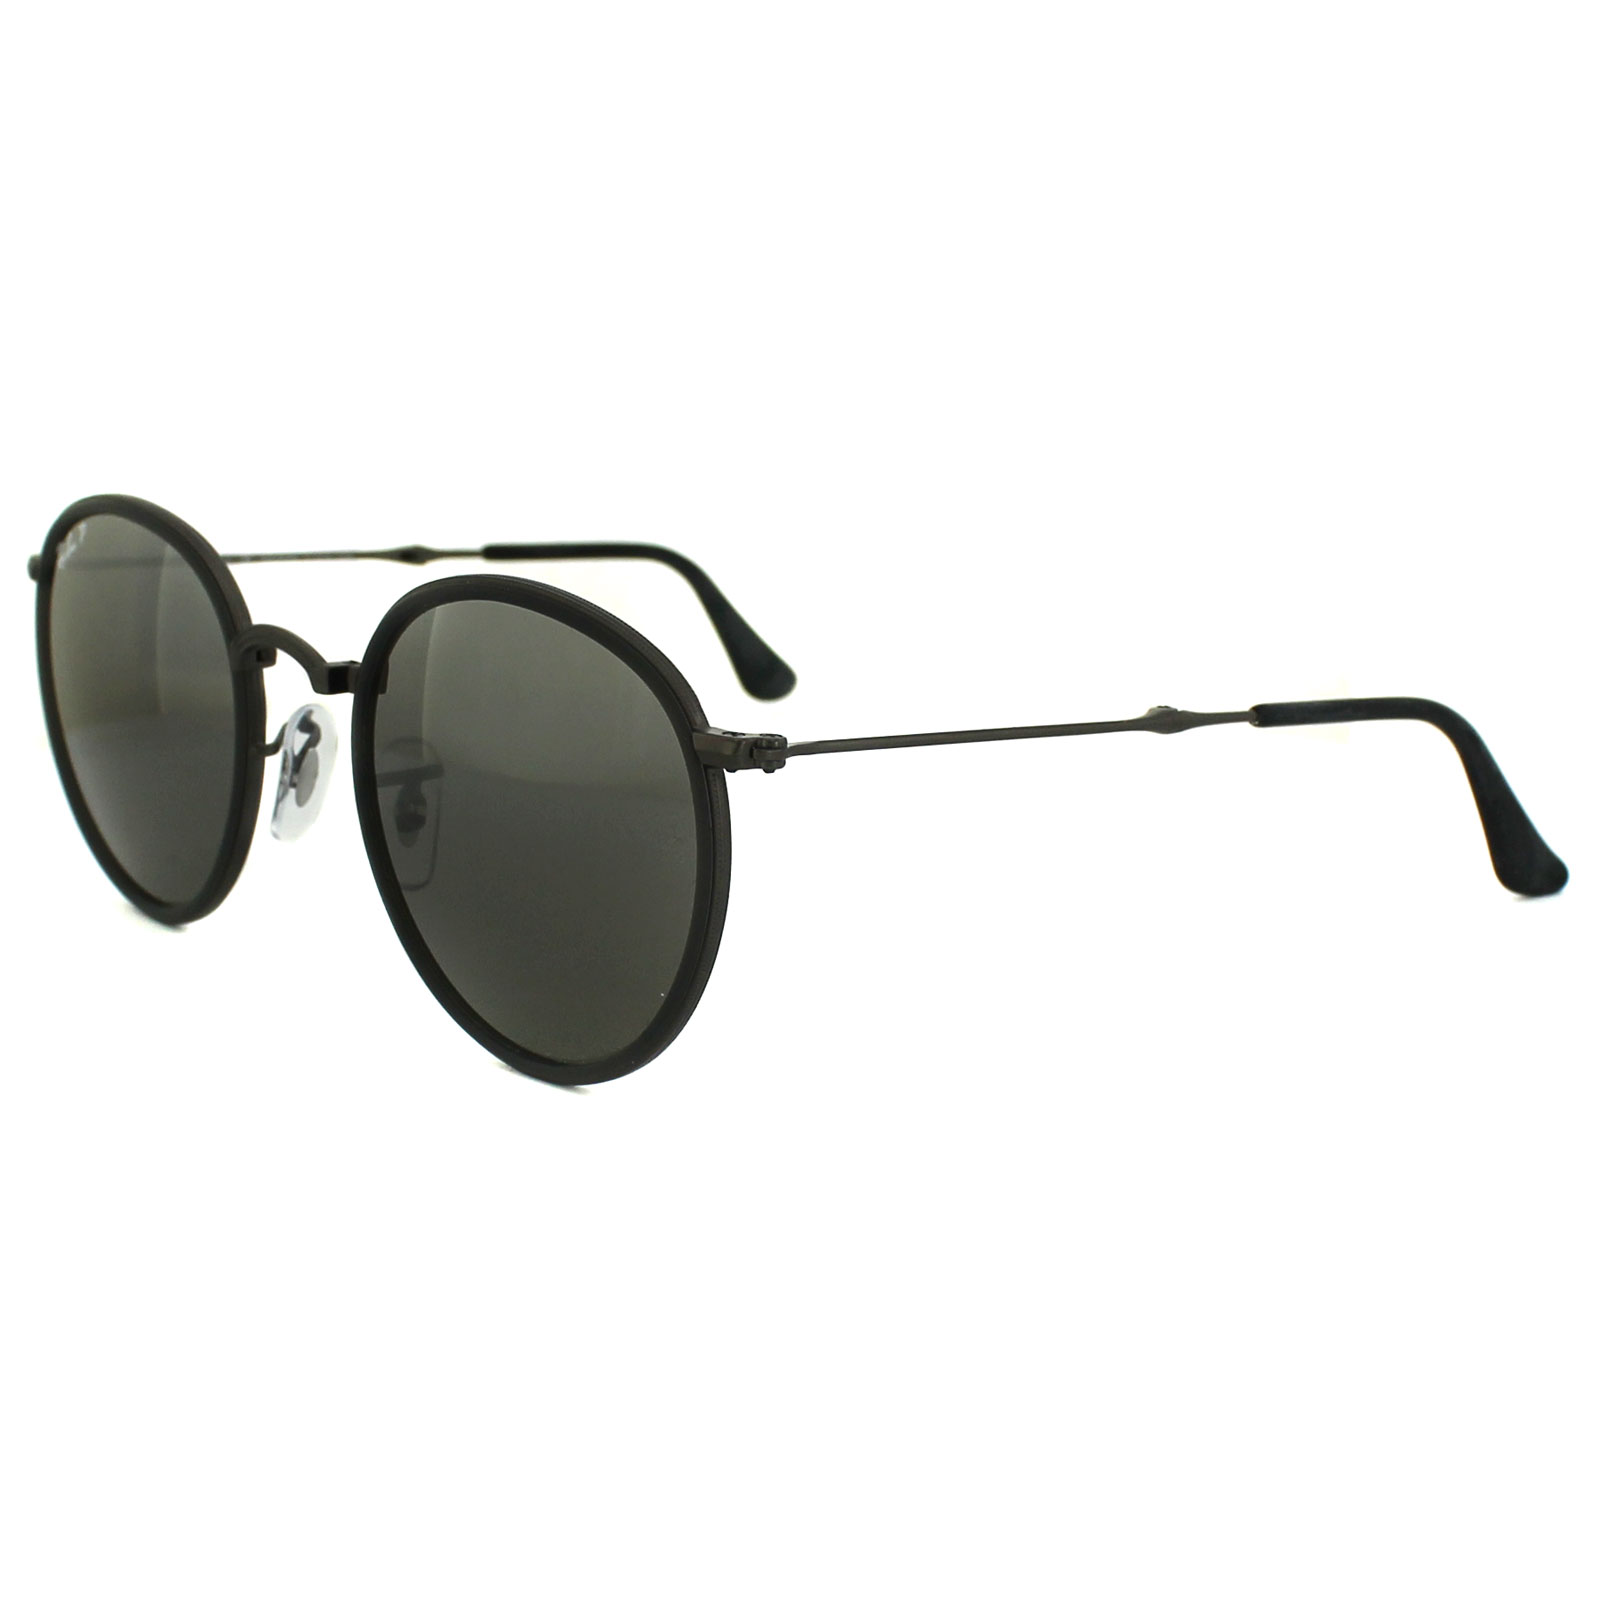 bcd44b064d198 ... metal black grey gradient 97c8b ec1f3  shop sentinel ray ban sunglasses  round folding 3517 029 n8 gunmetal silver gradient polarized 623bf edc07